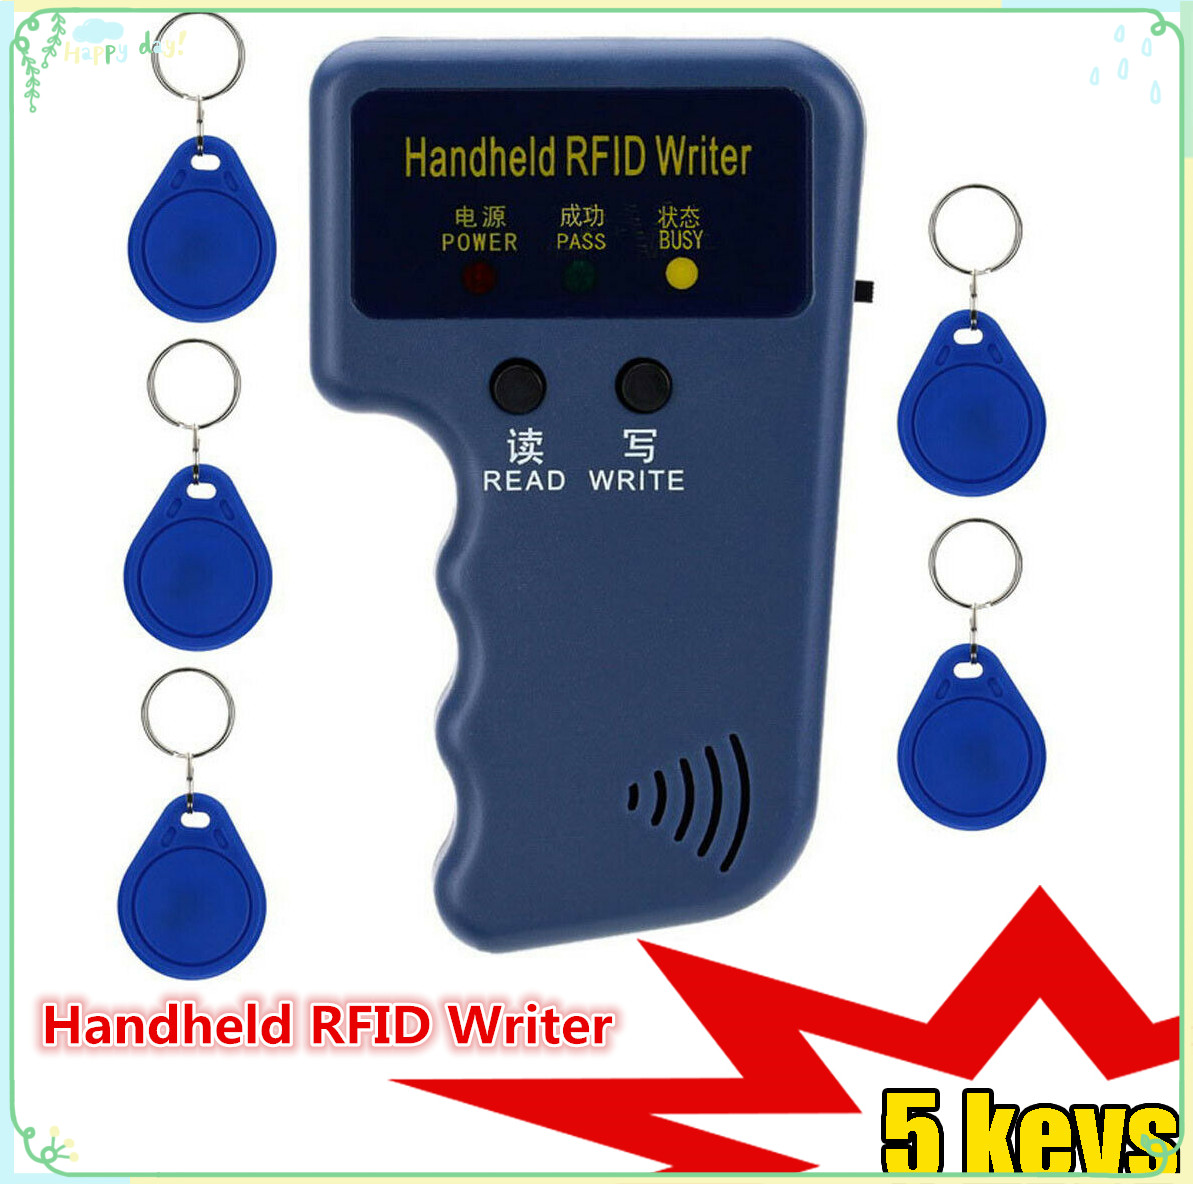 EM4100 125KHz Handheld RFID Writer Portable Programmer Copier T5577 5200 EM4305 Replicable ID Keychain Identification Card